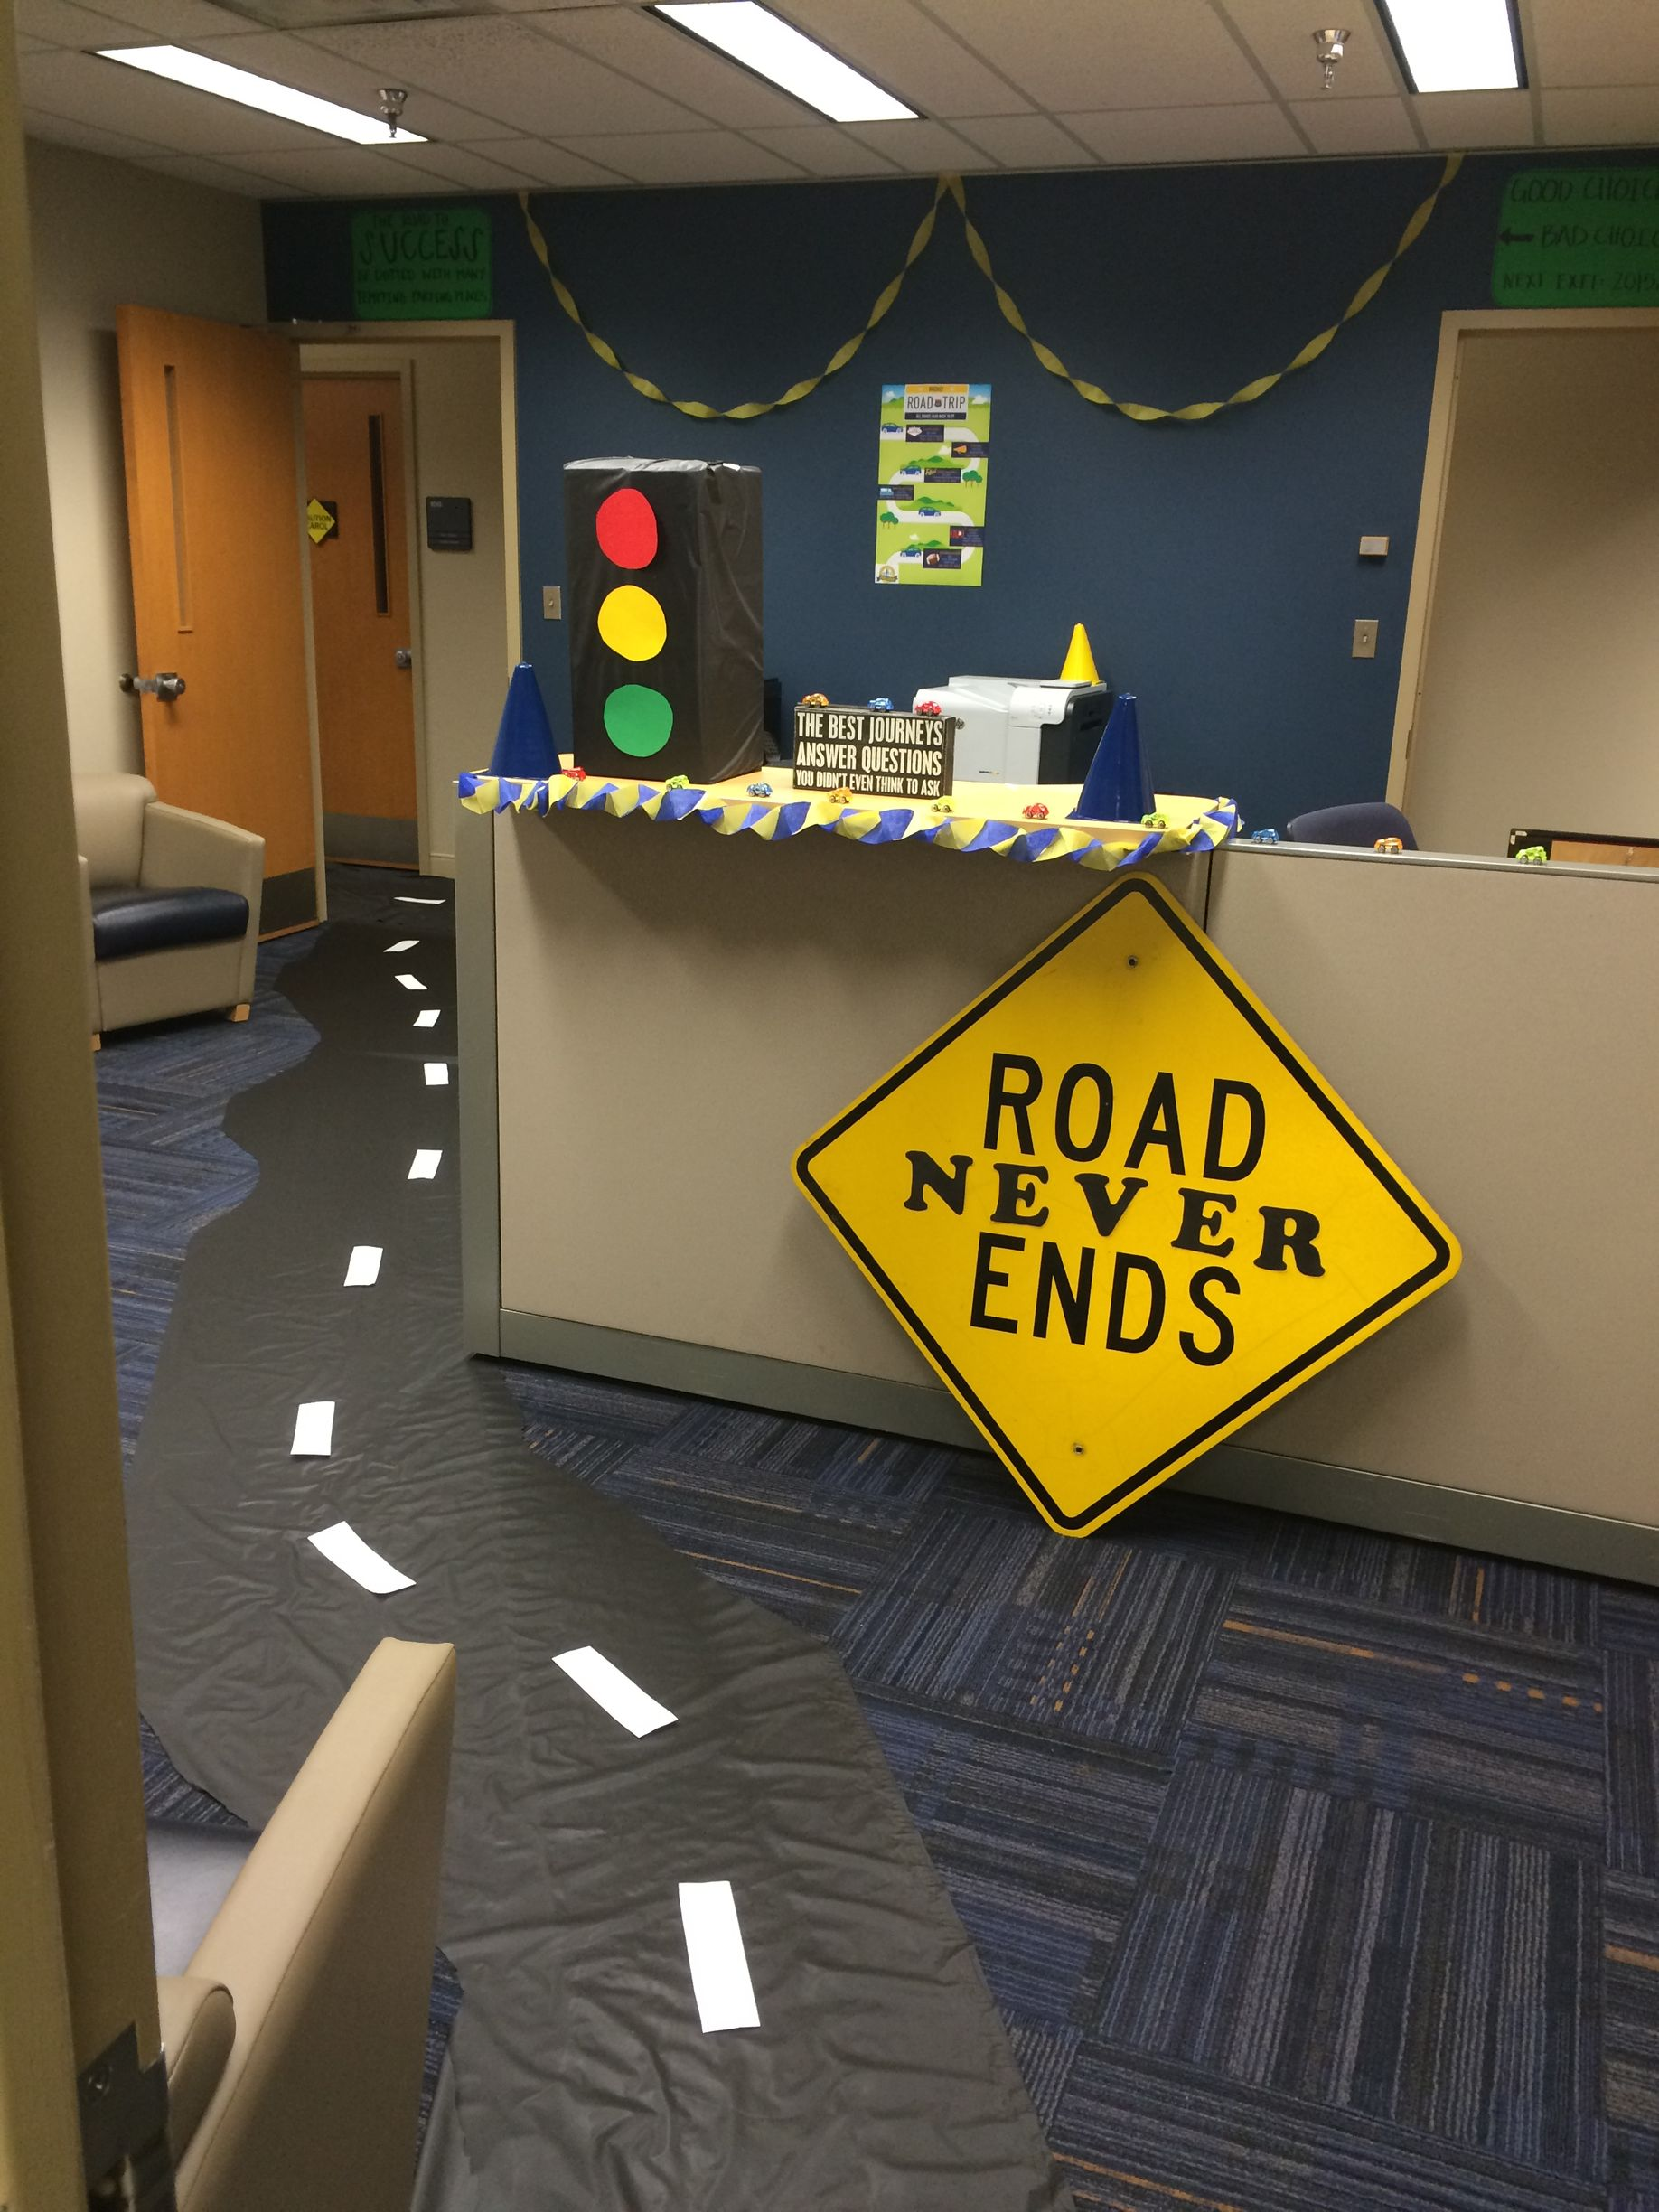 COBI Graduate Programs office wins campus-wide office decorating contest